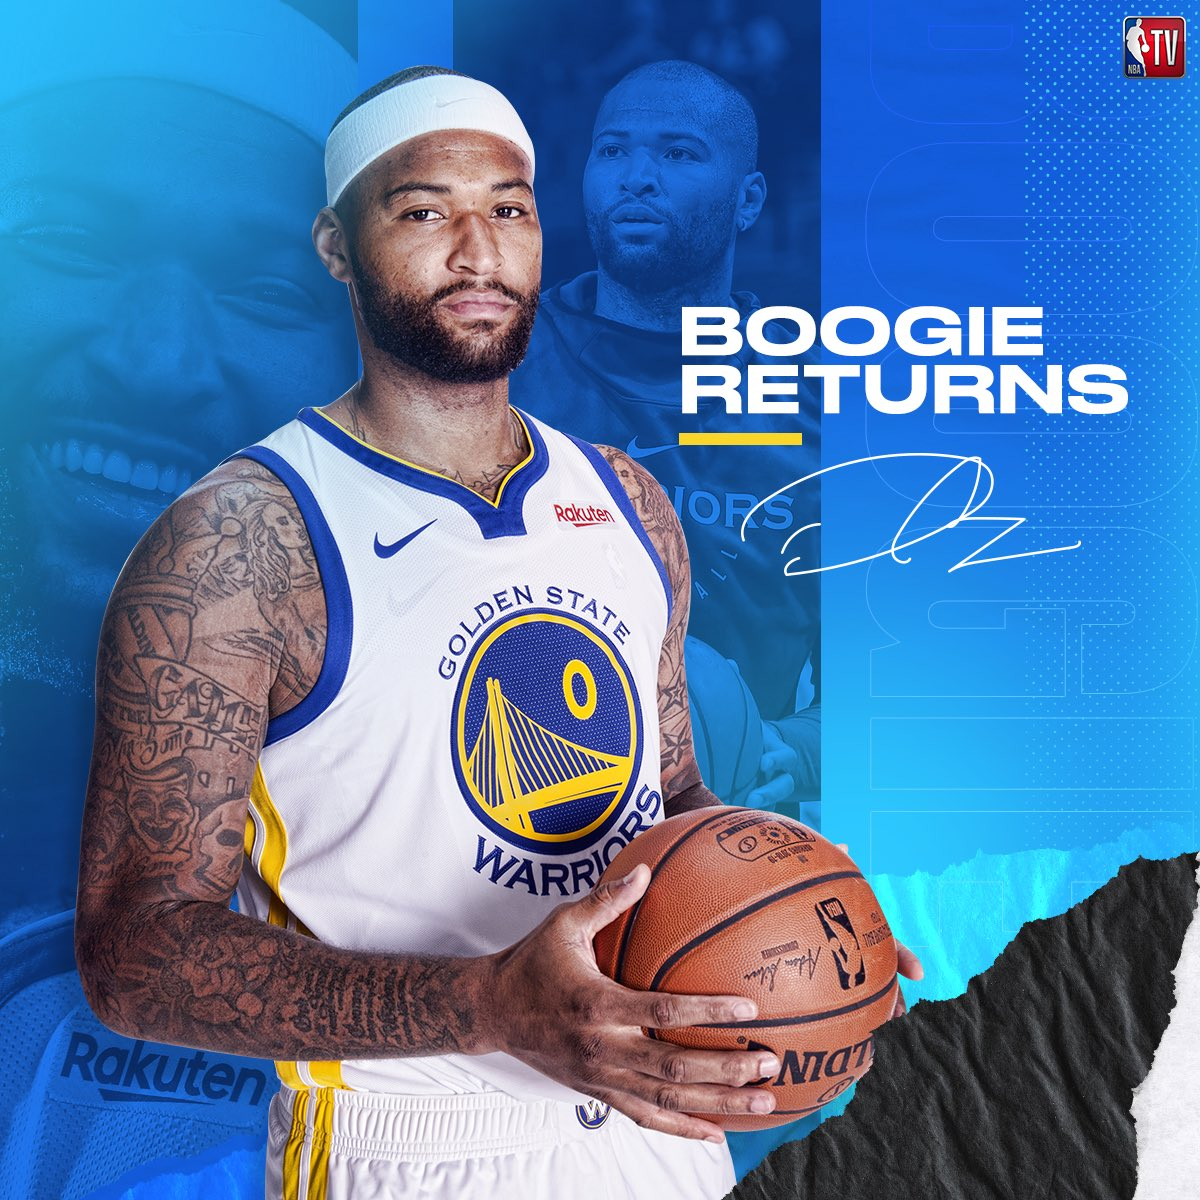 It's almost that time! ⌚️ What should we expect in Boogie's return to basketball?